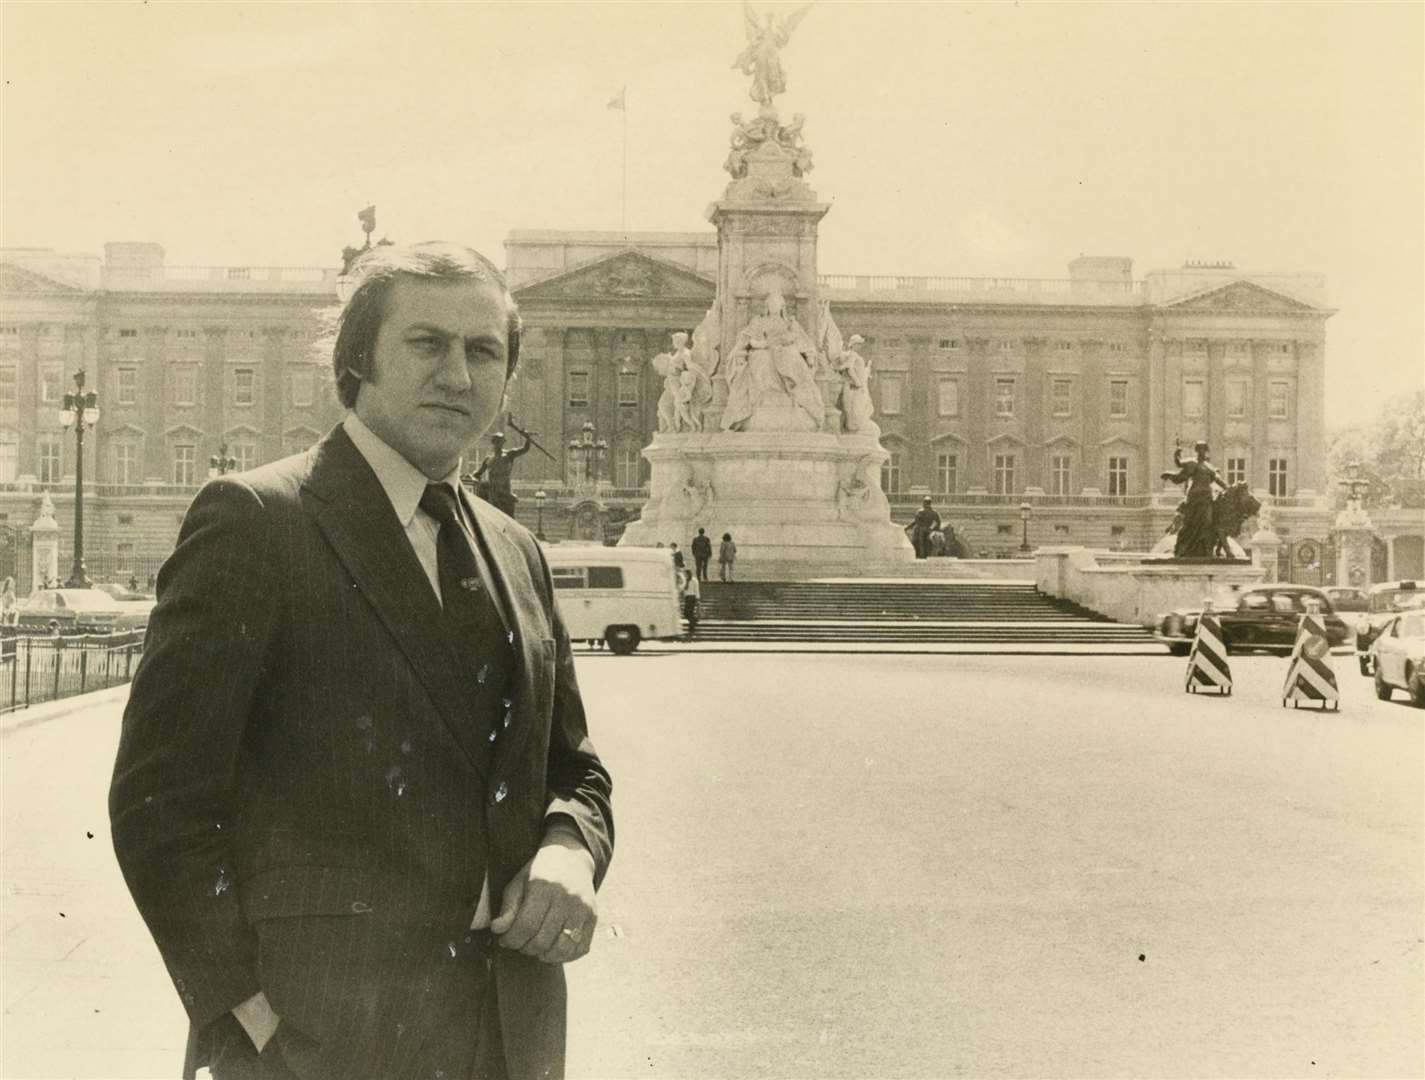 Mr Russell outside Buckingham Palace. Picture Dix Noonan Webb